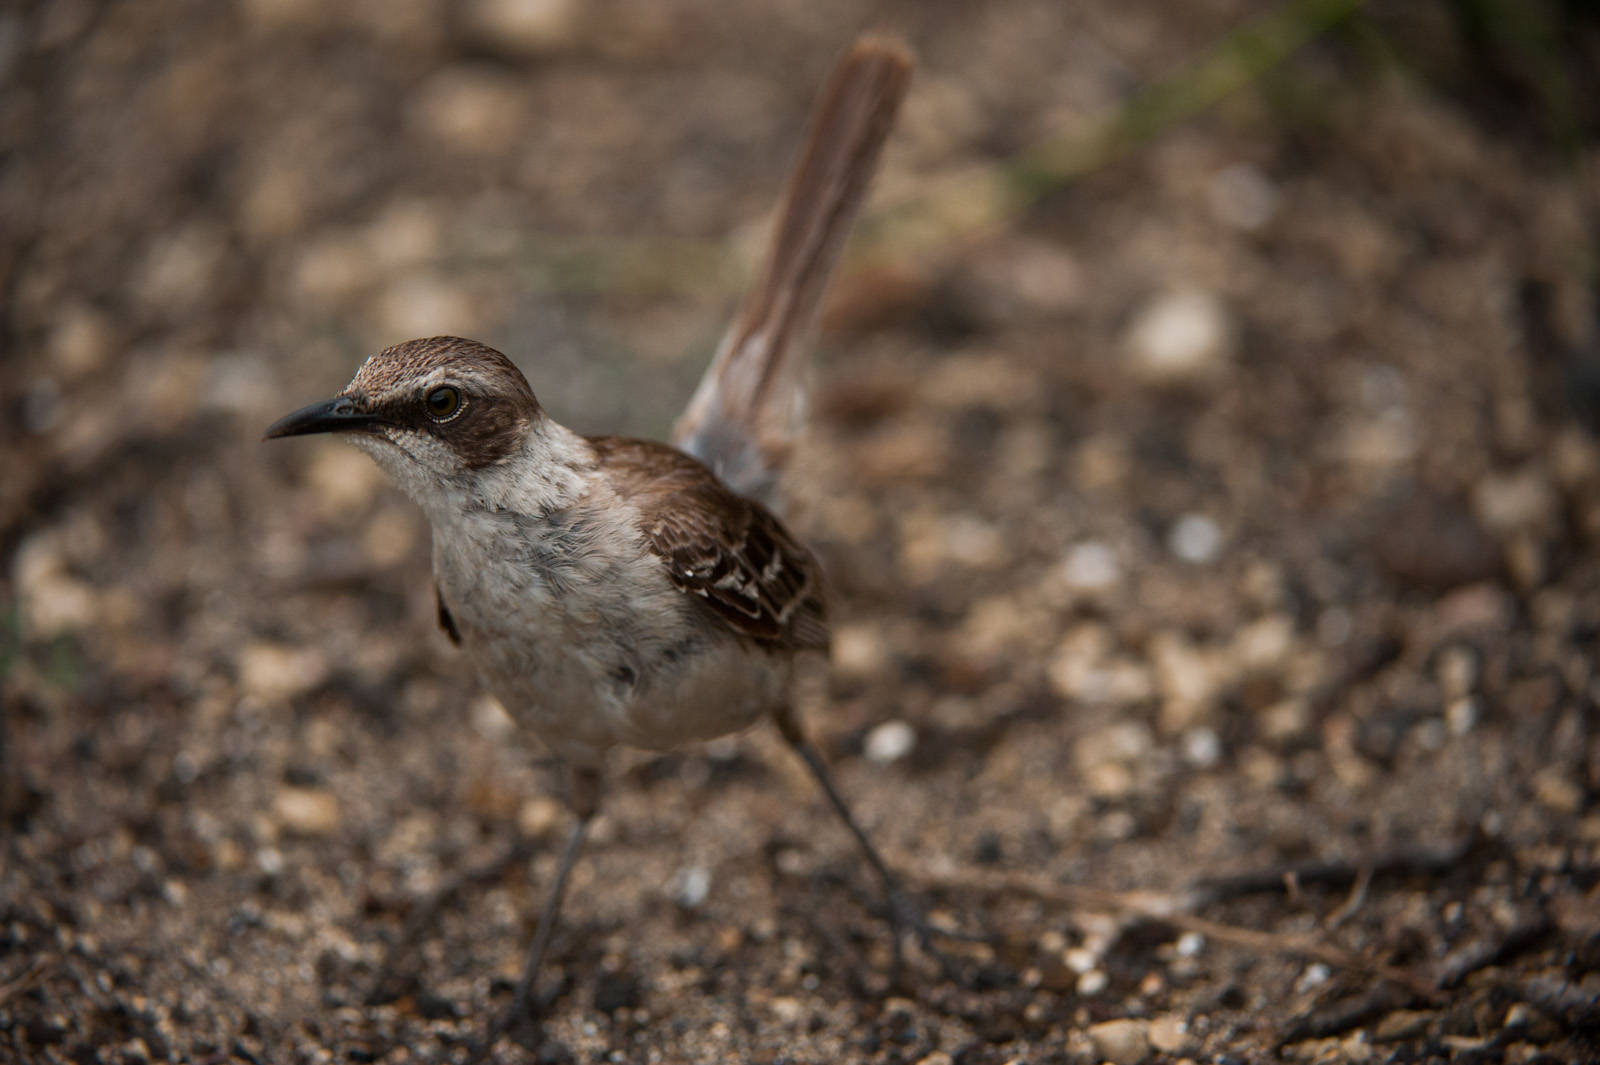 Photo: A Galapagos mockingbird (Mimus parvulus) on Urbina Bay, Isabela Island in Galapagos National Park.